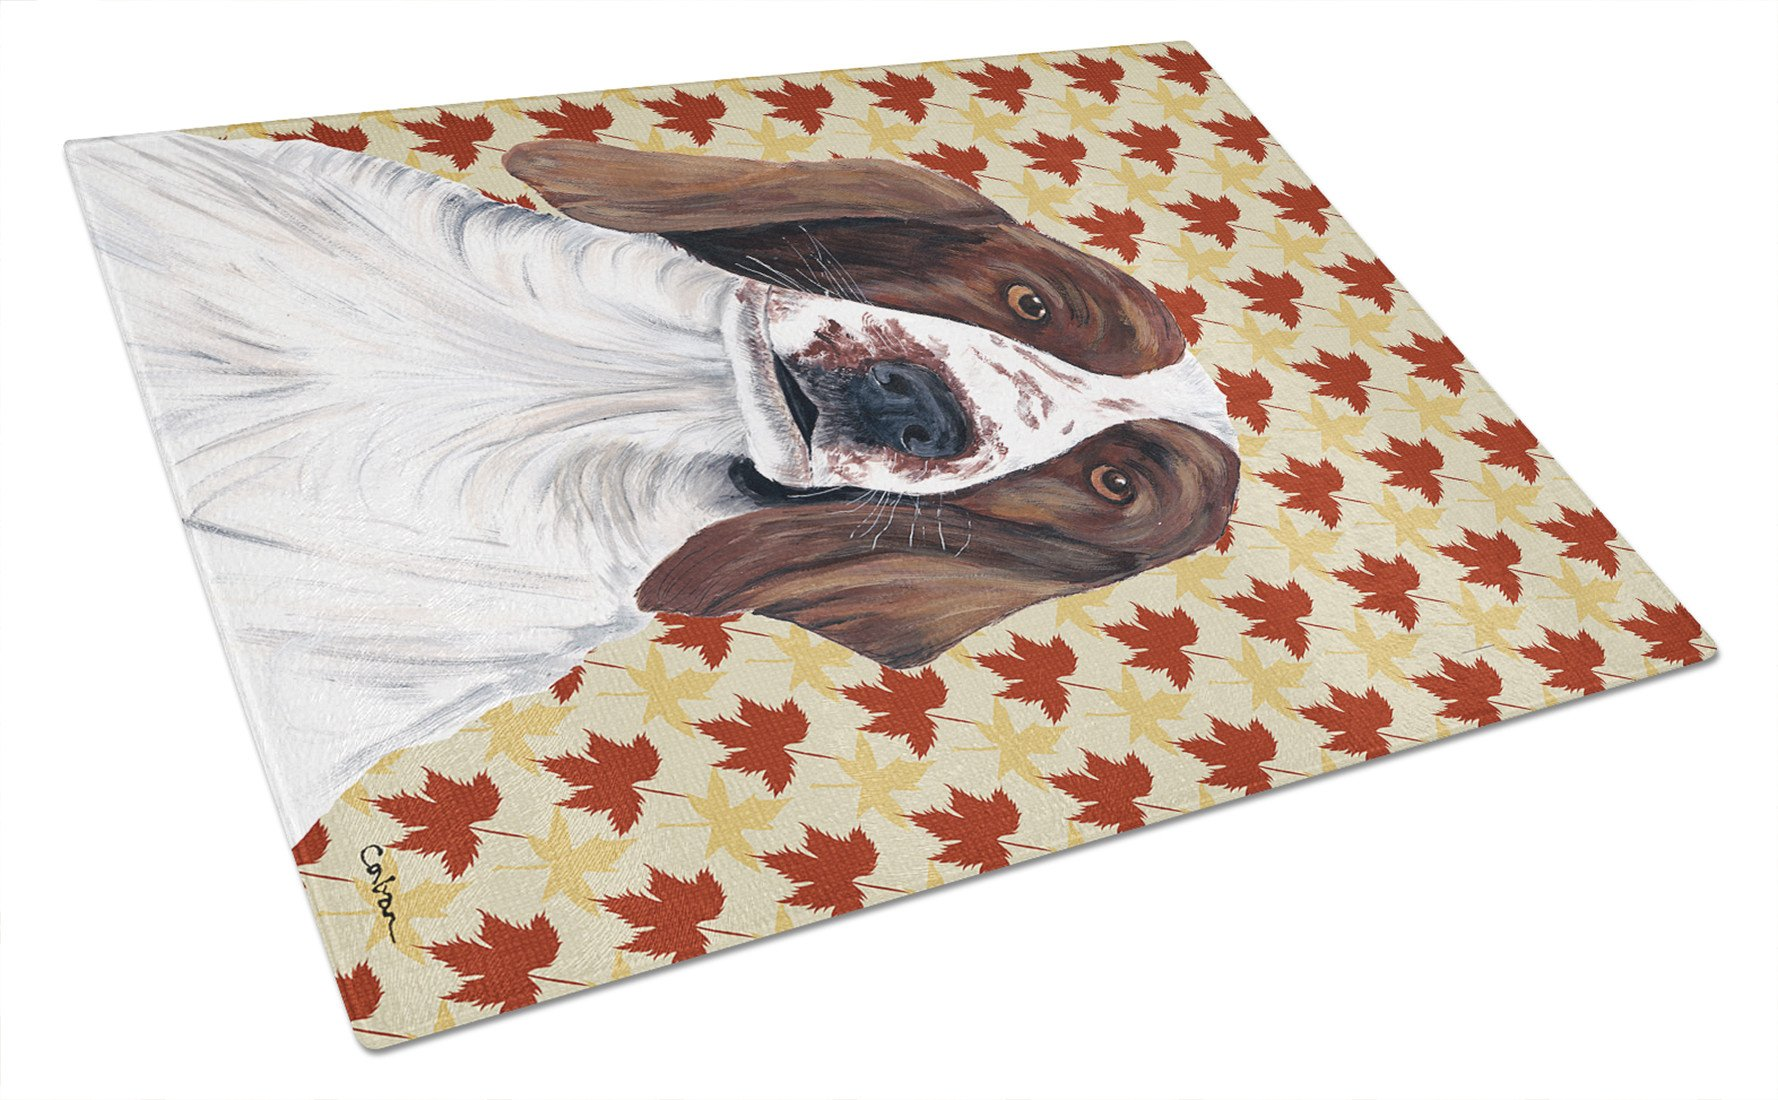 Welsh Springer Spaniel Fall Leaves Portrait Glass Cutting Board Large by Caroline's Treasures